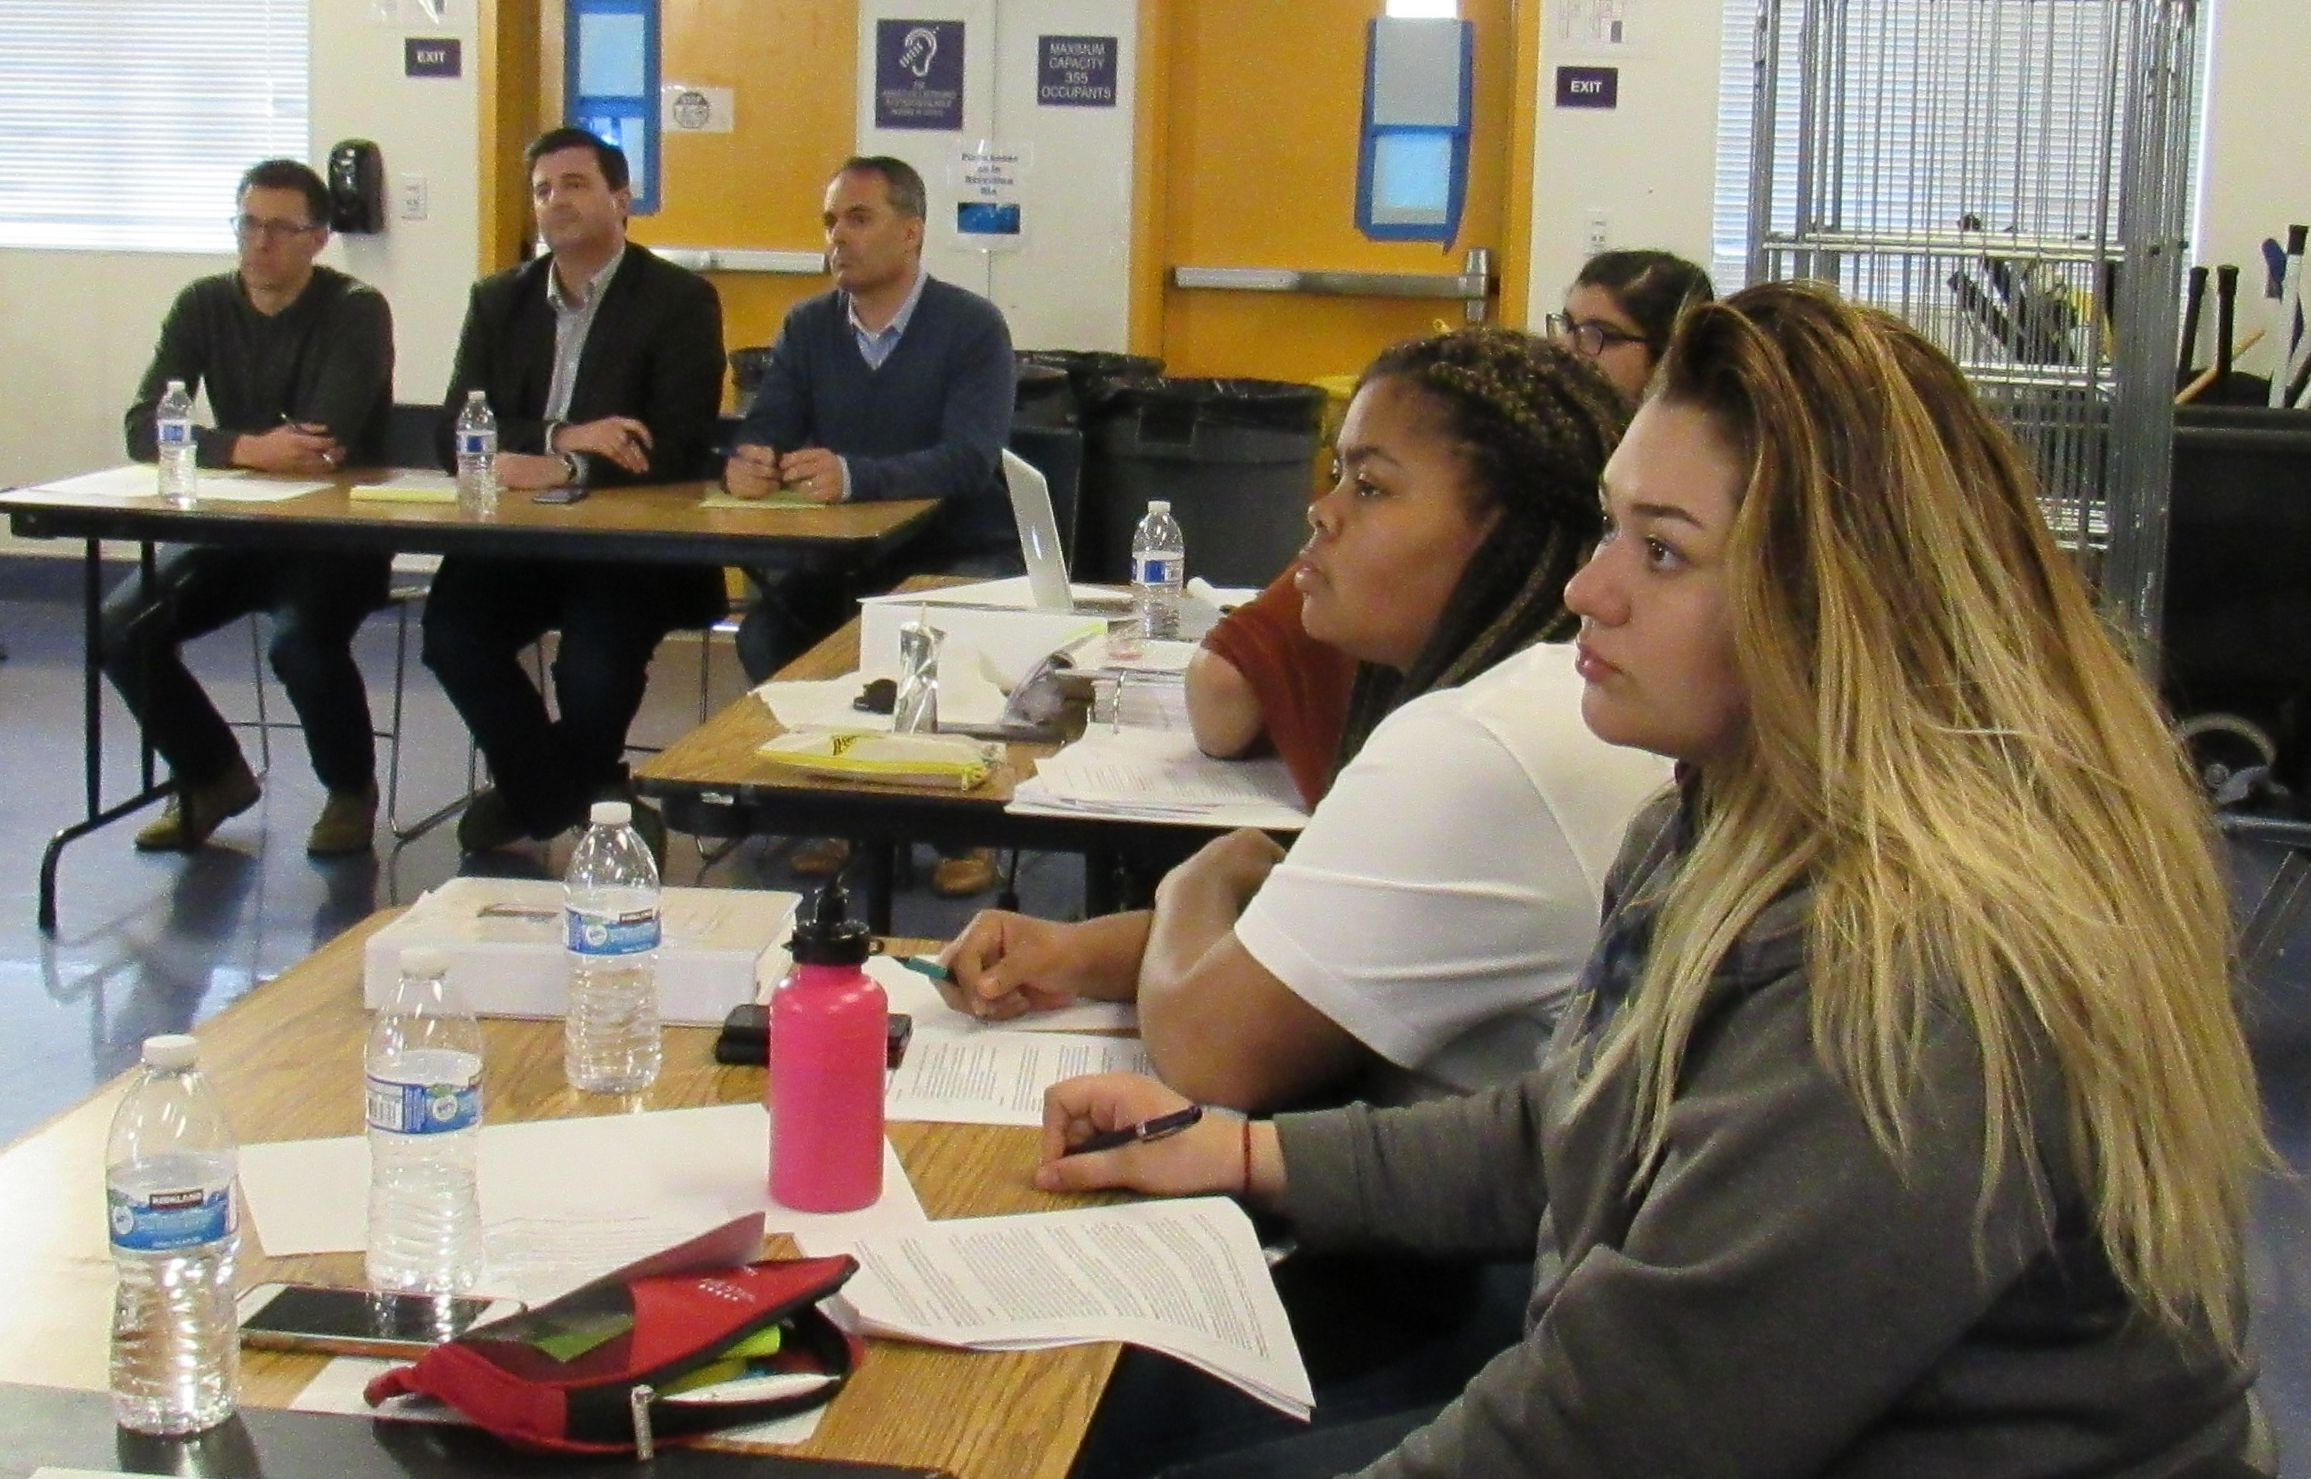 Students practiced for their Moot Court Presentation coming up later this month